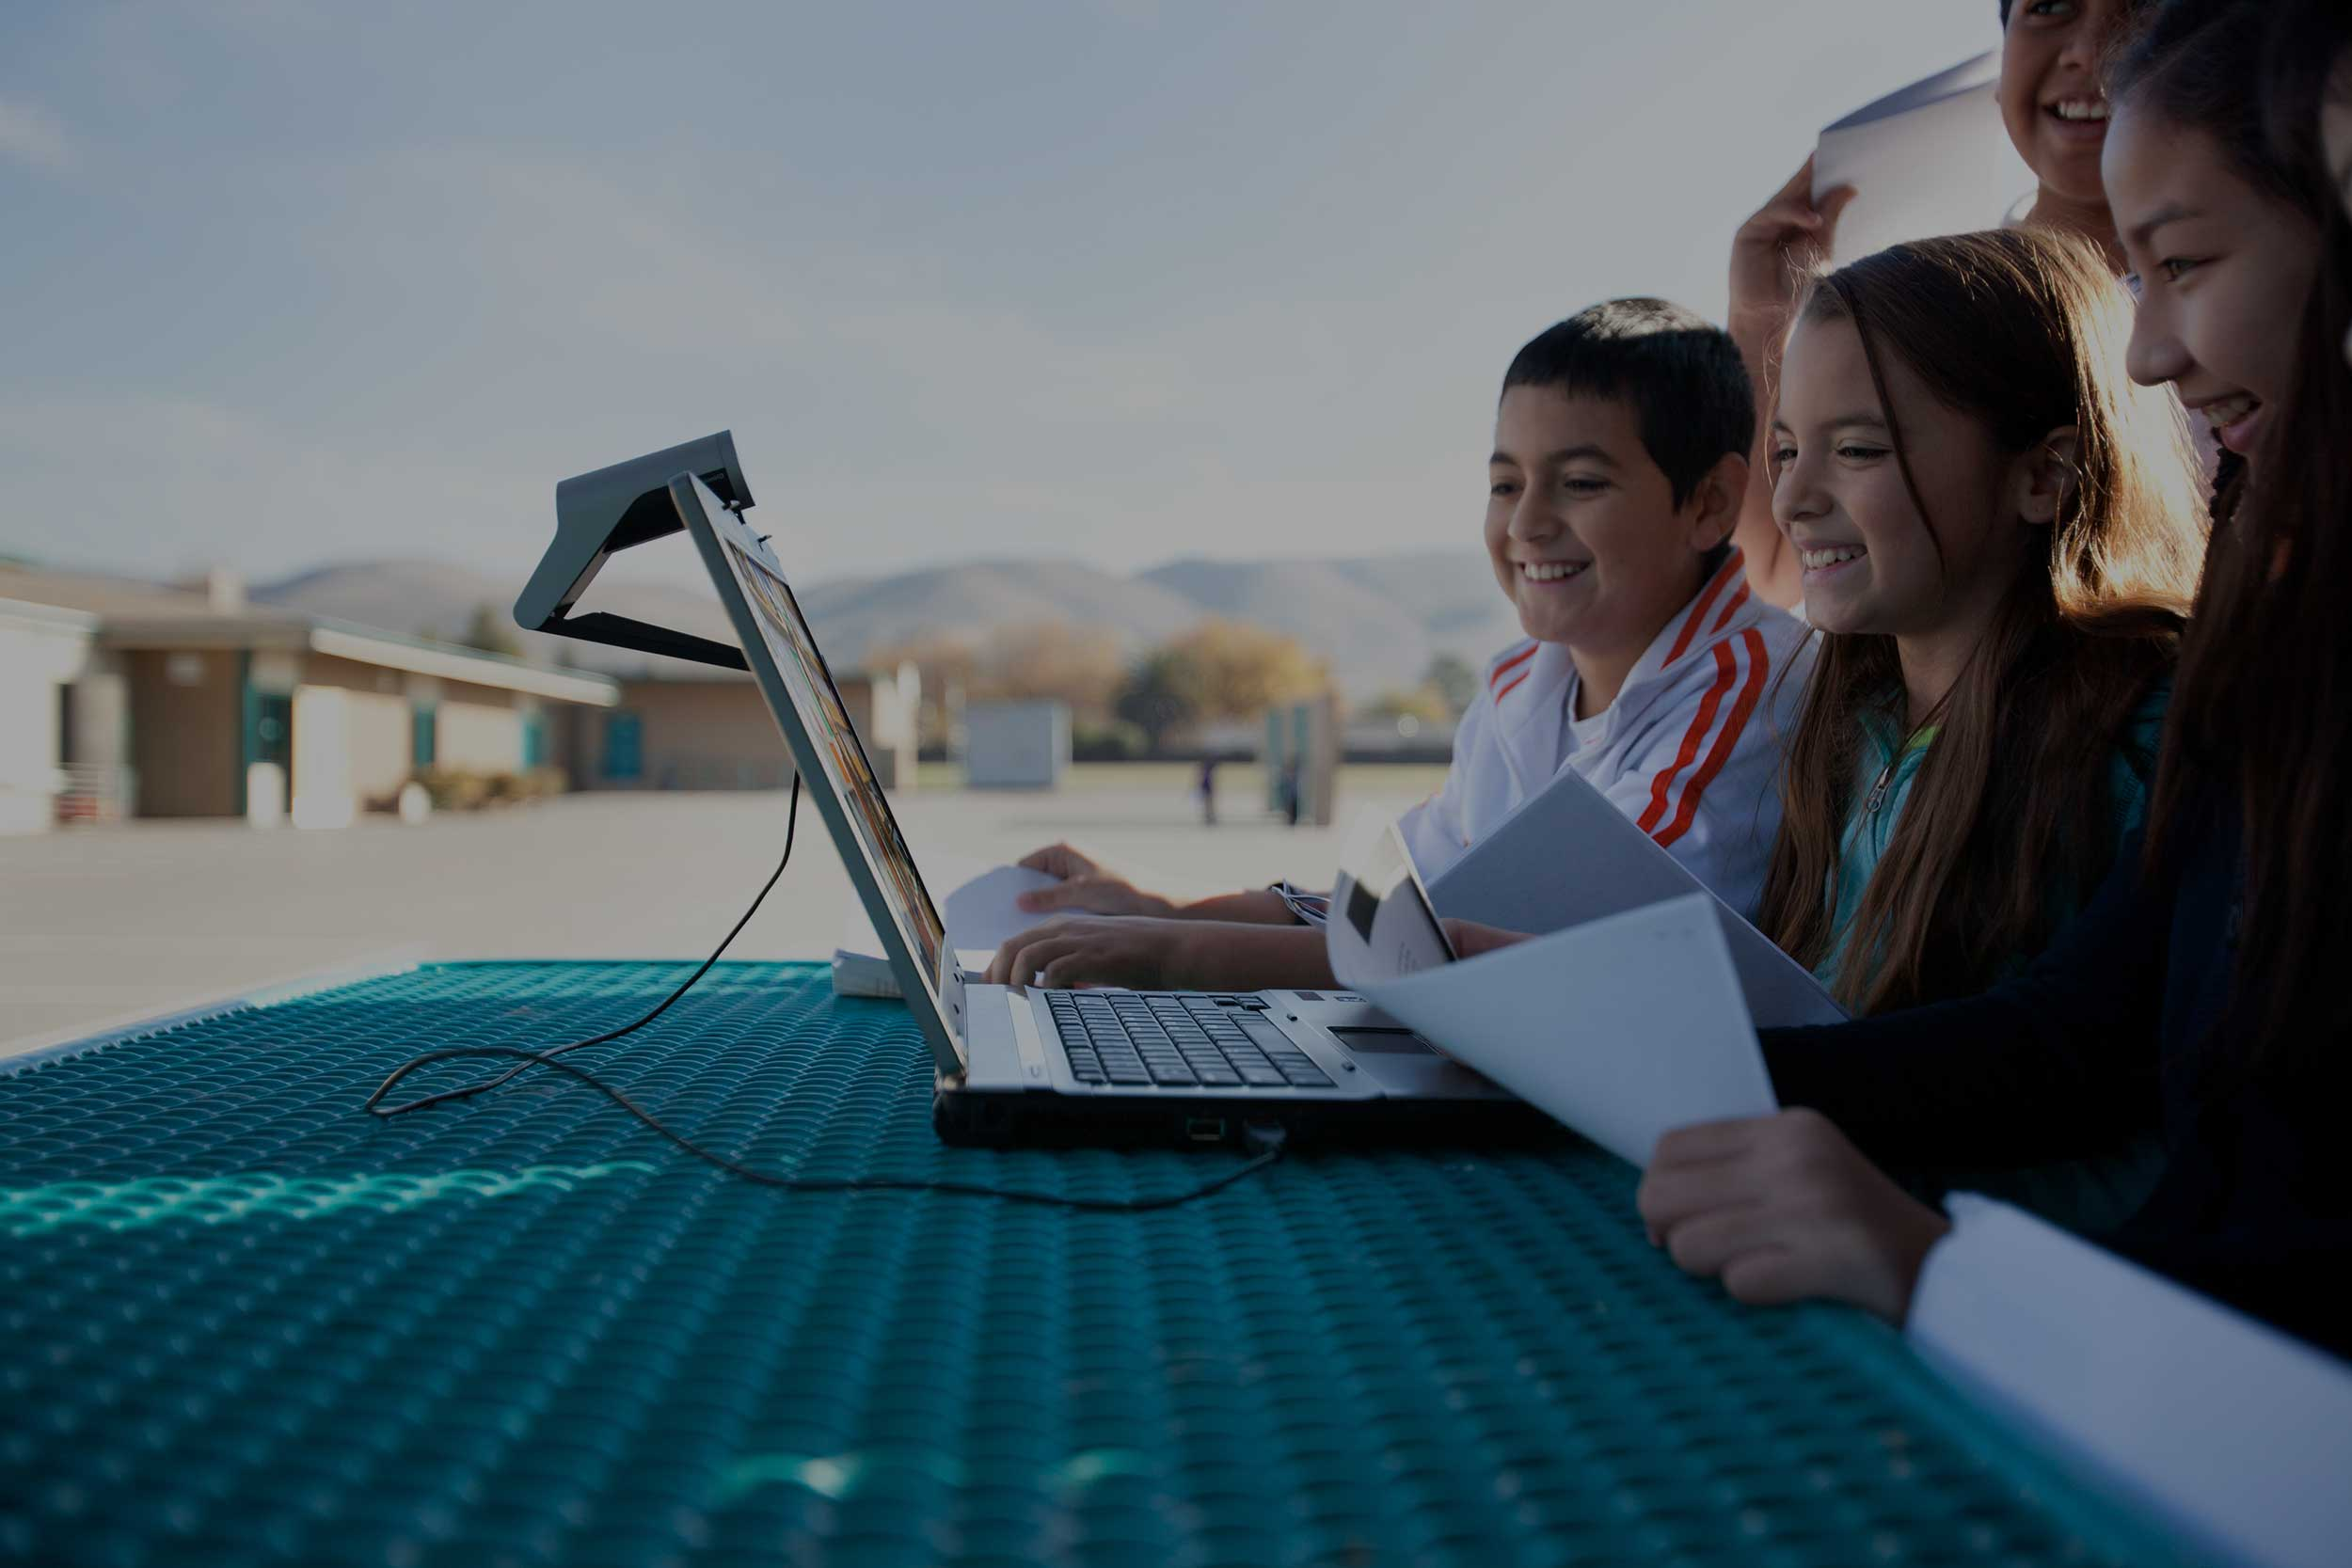 3 Components of Video Conferencing Technology in the Classroom